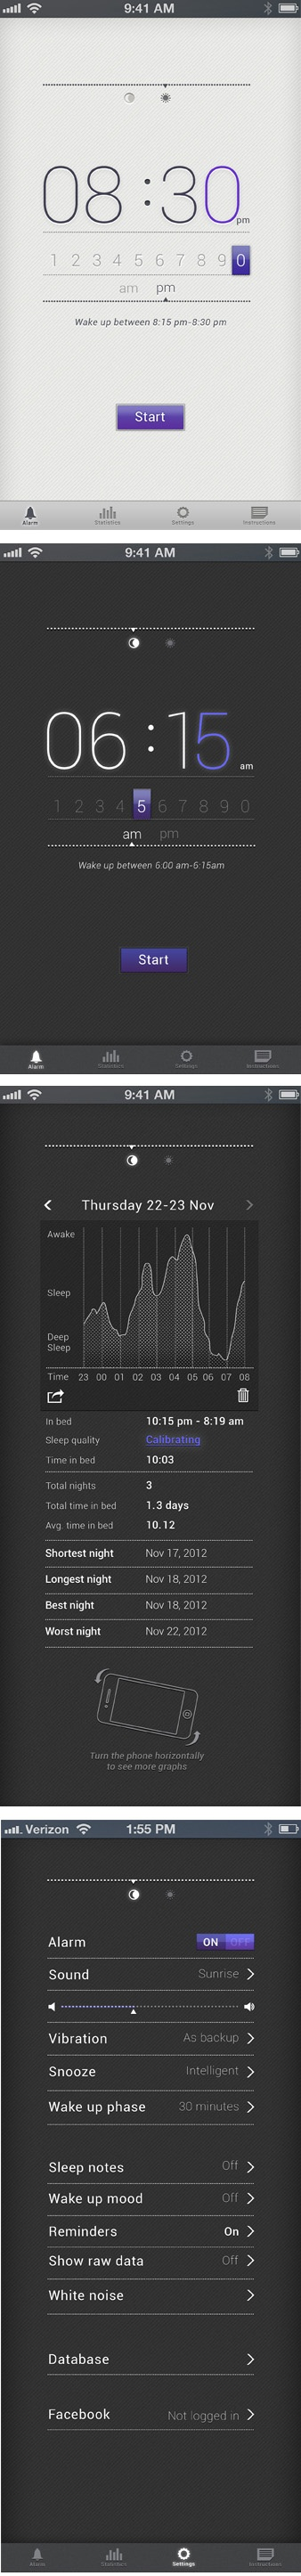 Sleep App UI